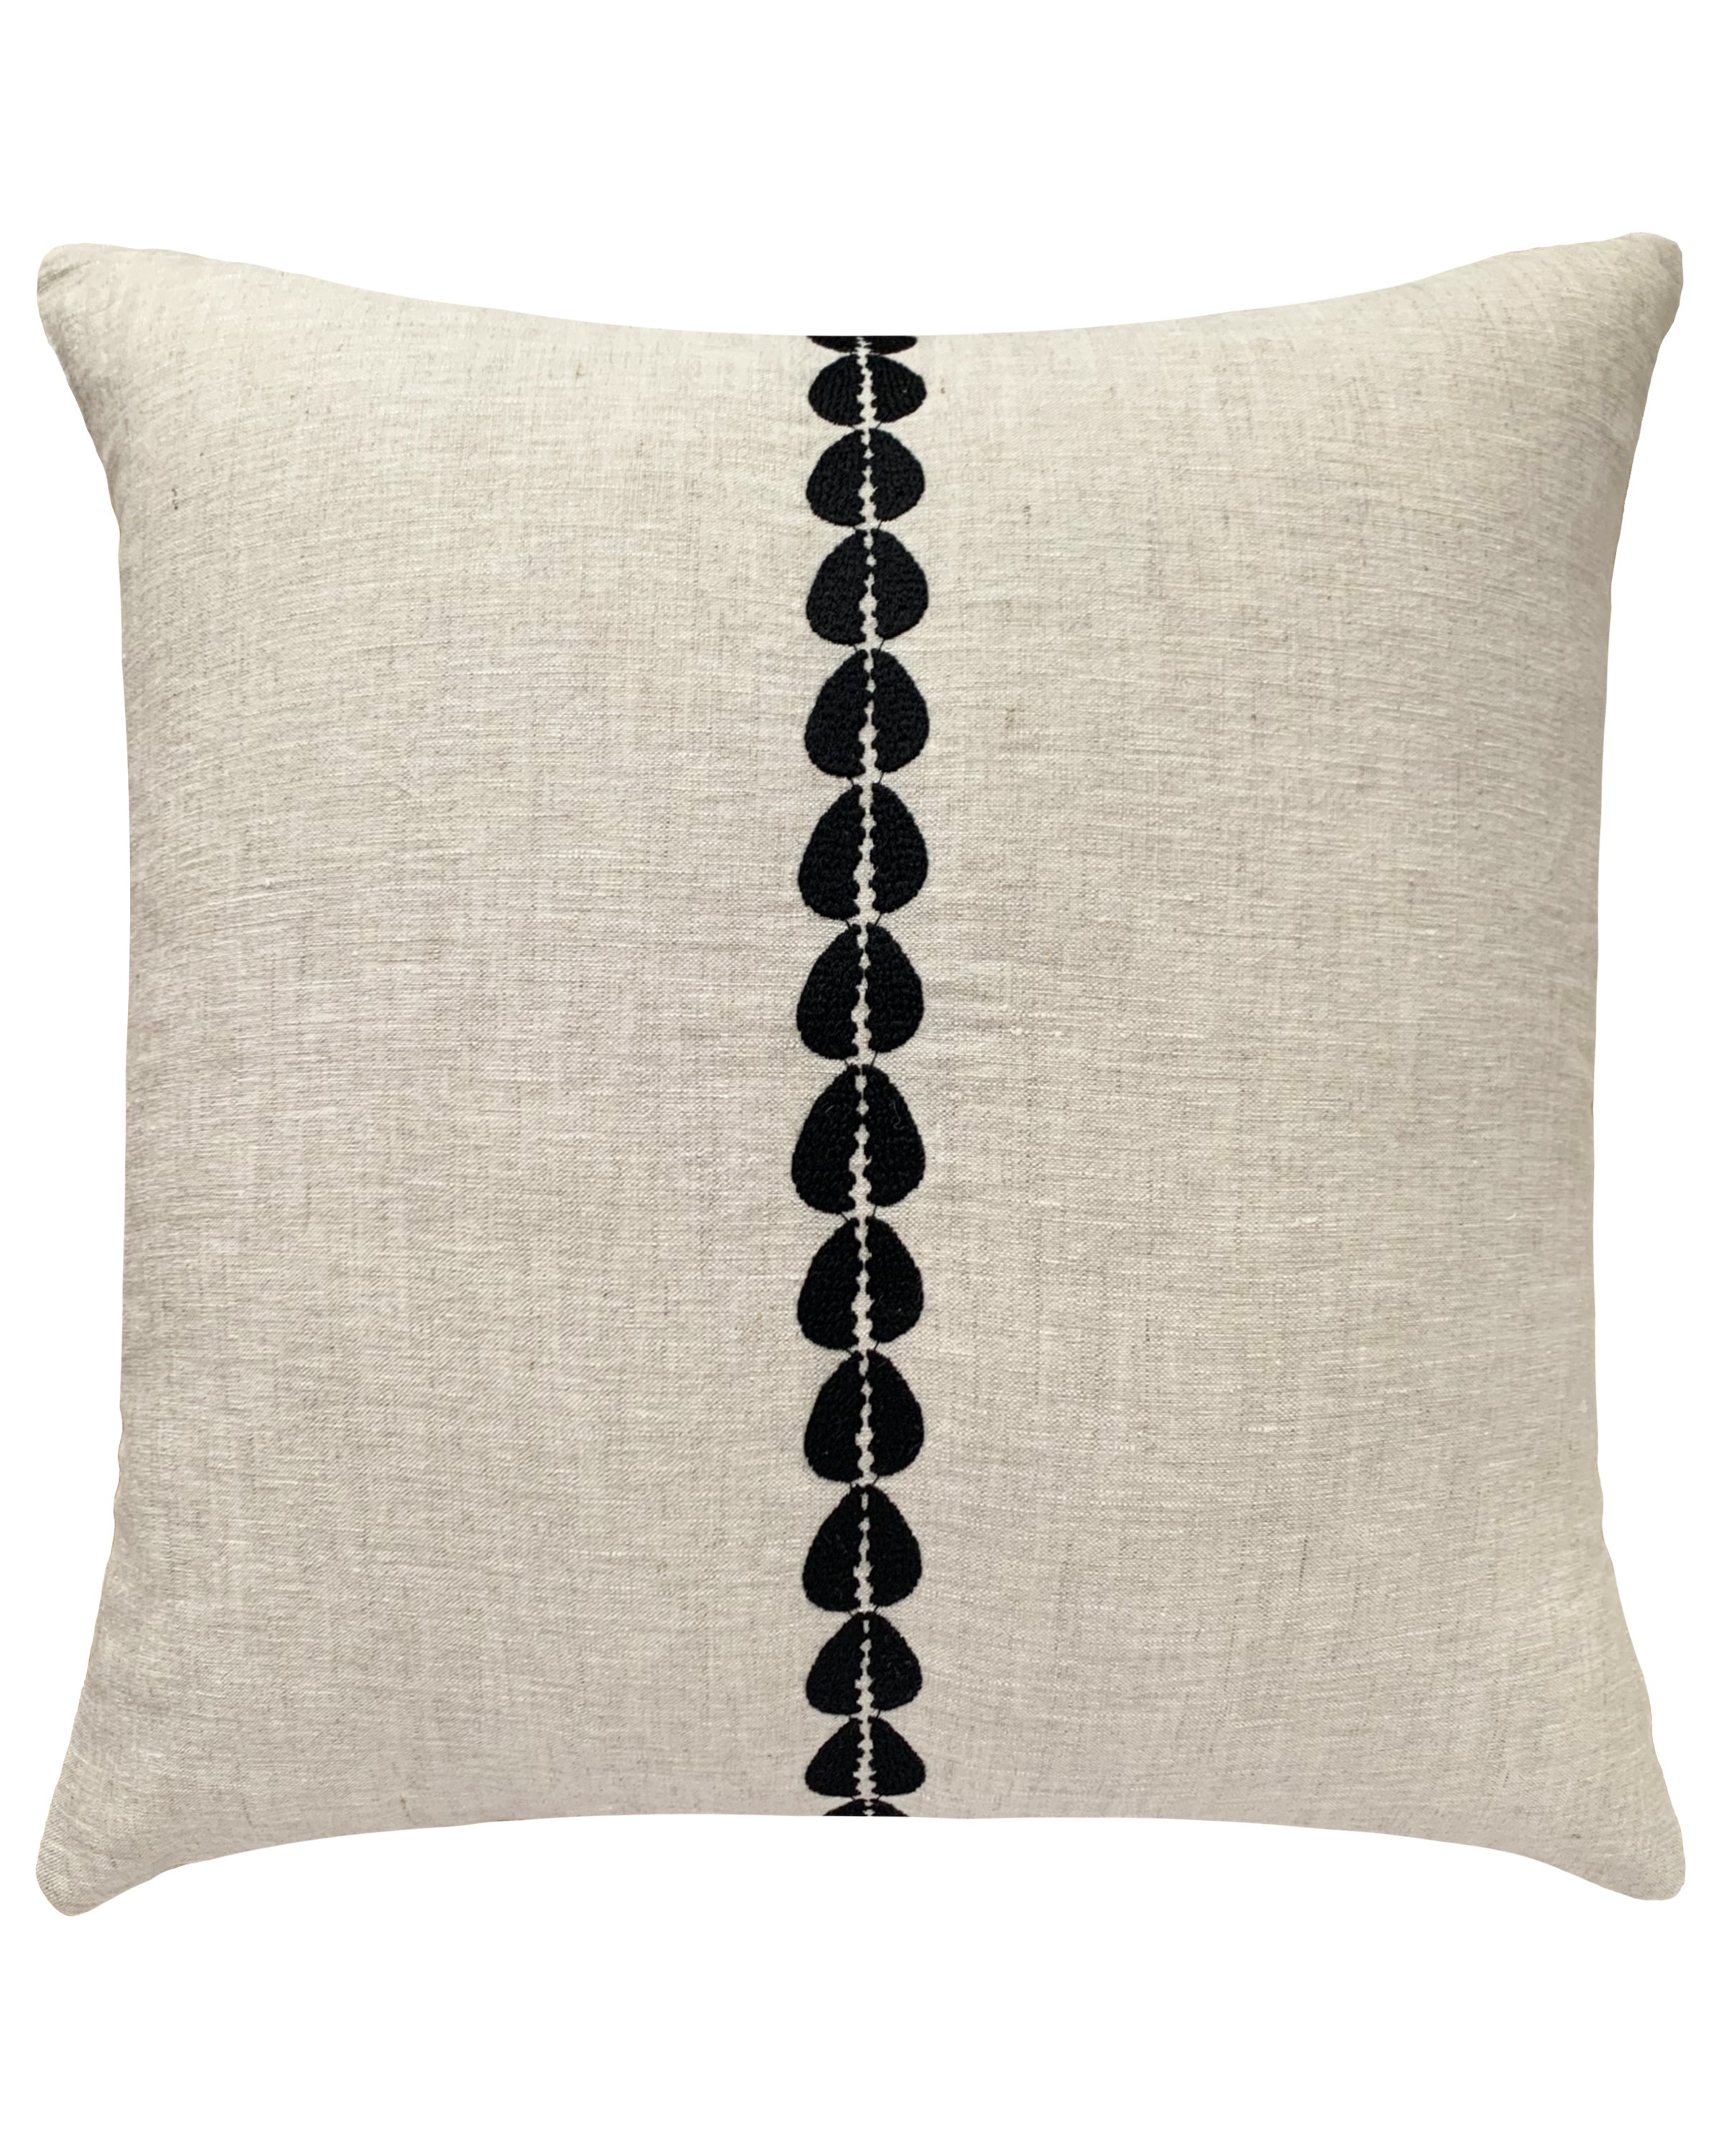 cowrie embroidered pillow in natural - cover only